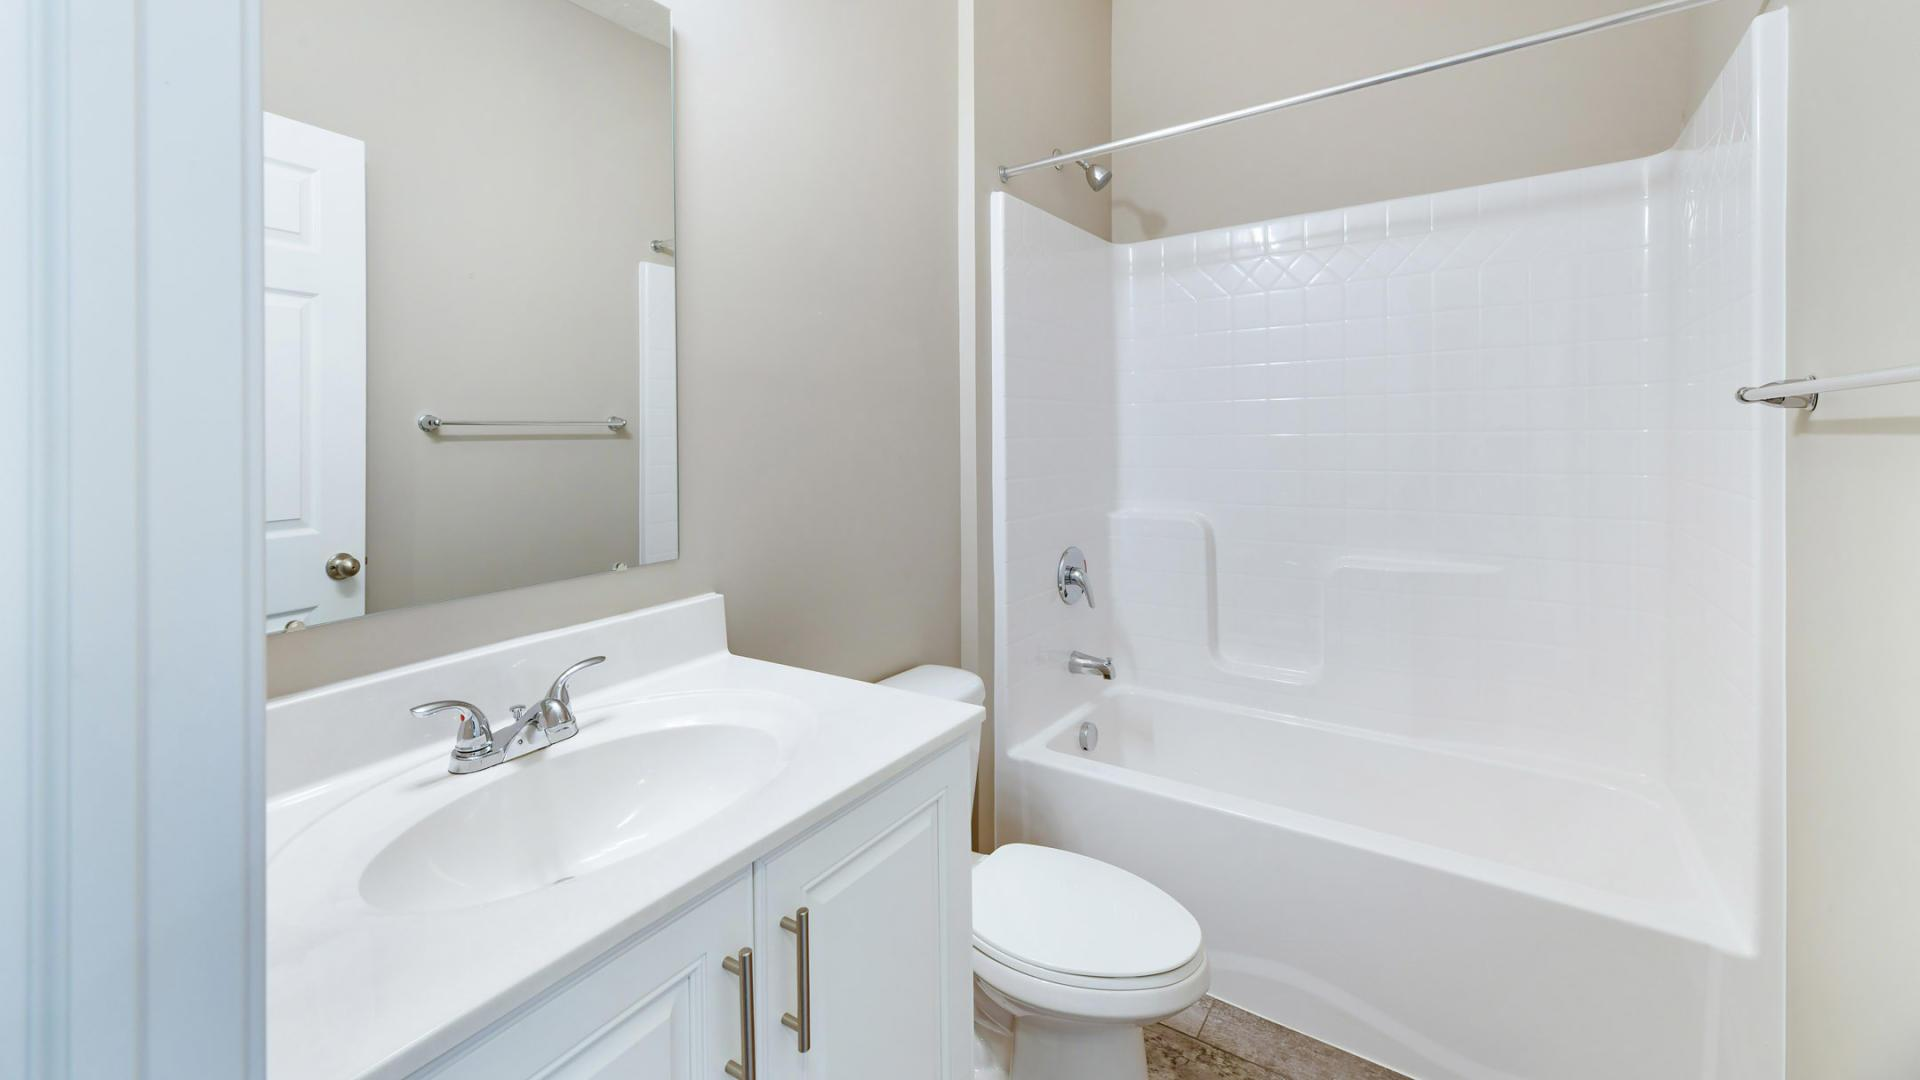 Bathroom featured in the Richmond By Maronda Homes in Pittsburgh, PA